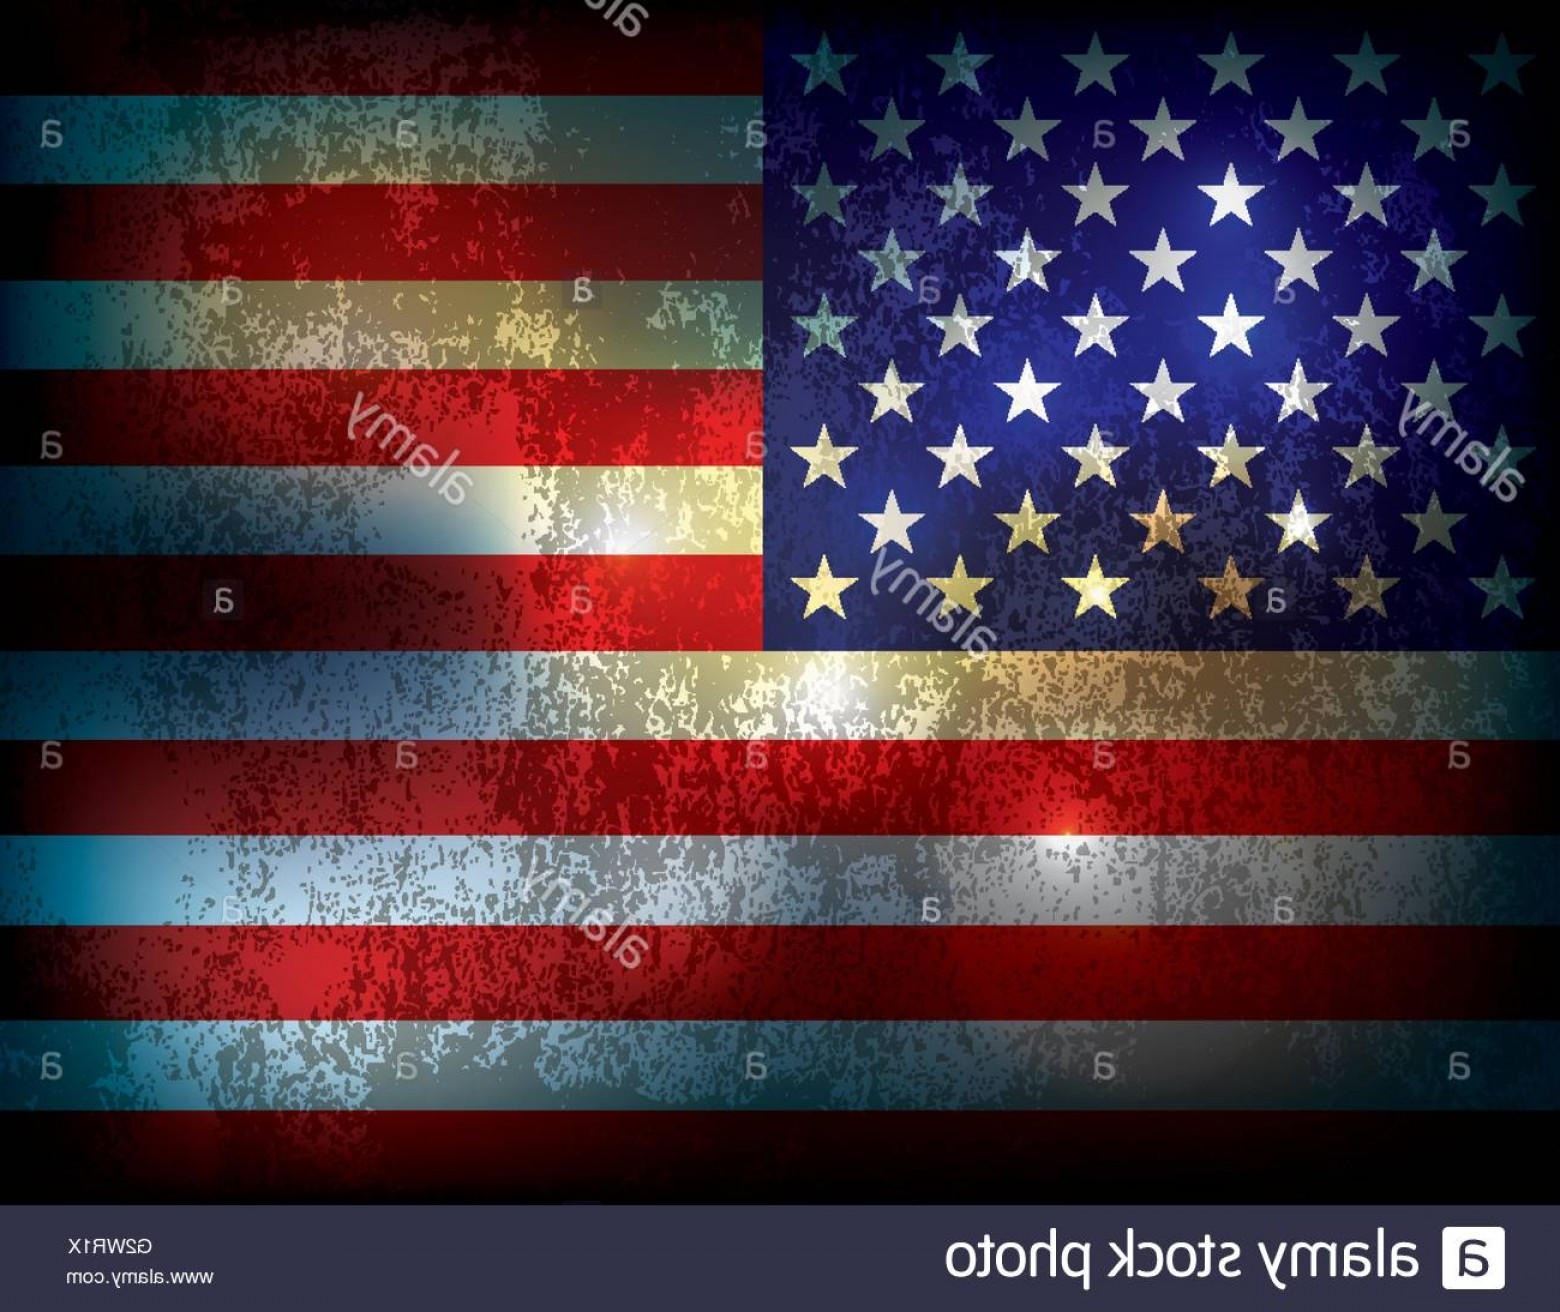 Rustic American Flag Vector: Stock Photo A Vintage Grunge Distressed American Flag Illustration Background